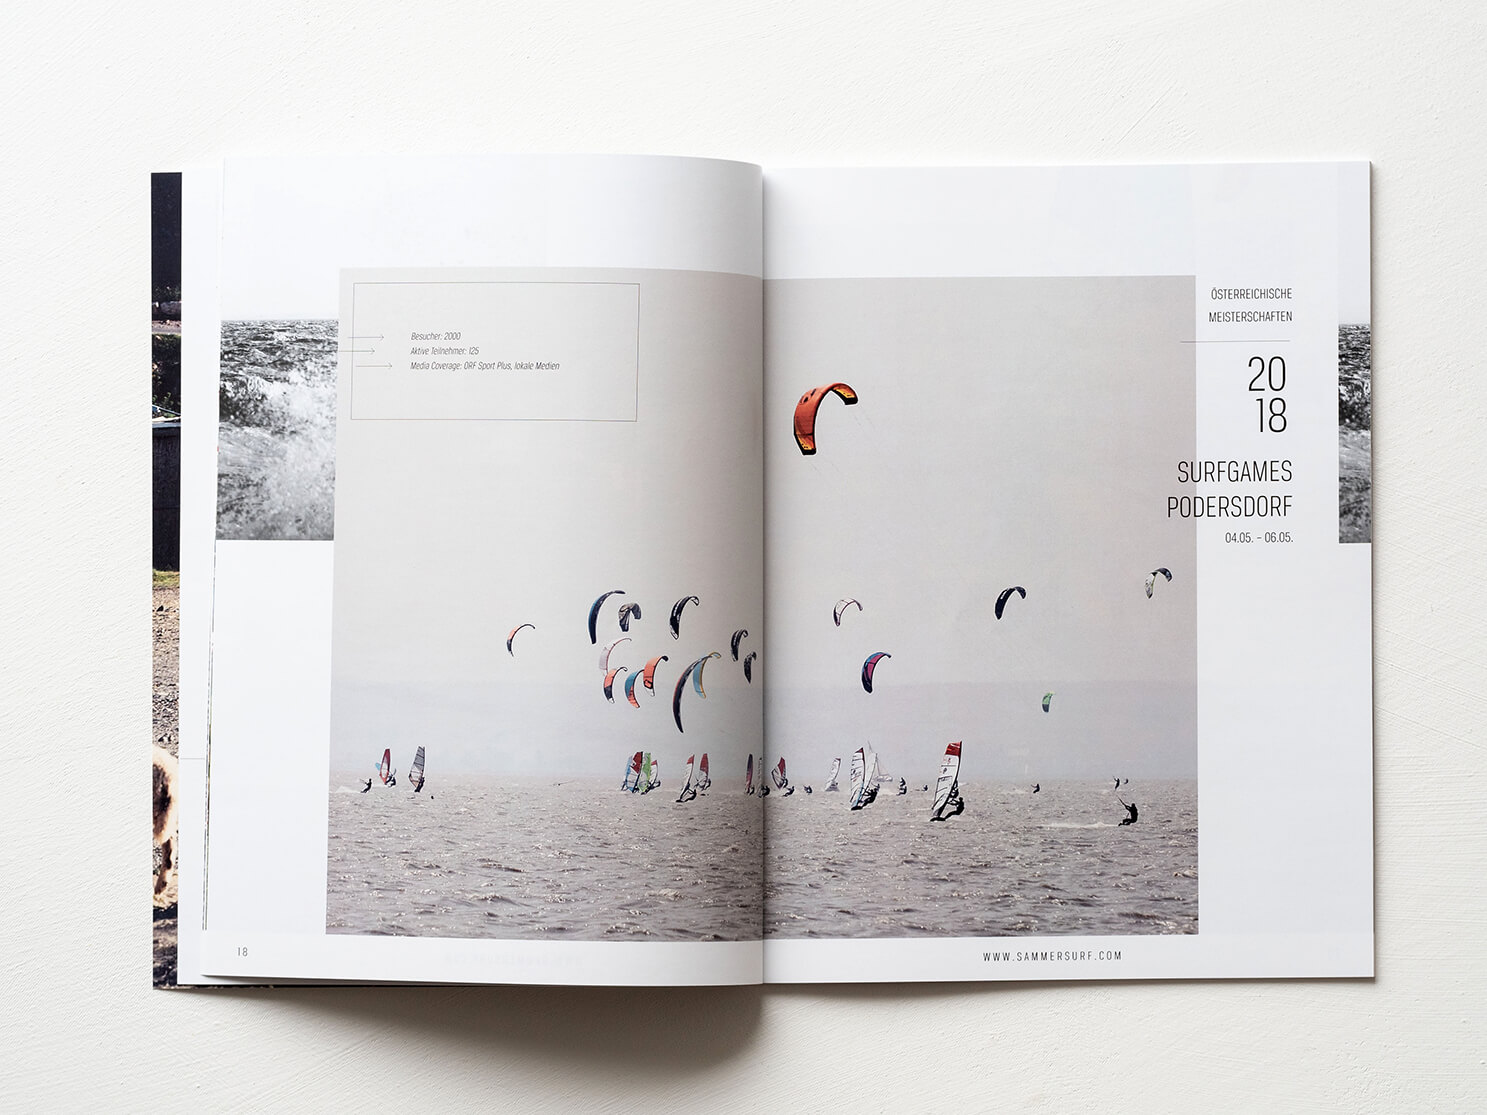 sammersurf, Branding, SUP, surfen, Kite, Chris Sammer, Corporate Design, Folder, Magazin, Editorialdesign, Typografie